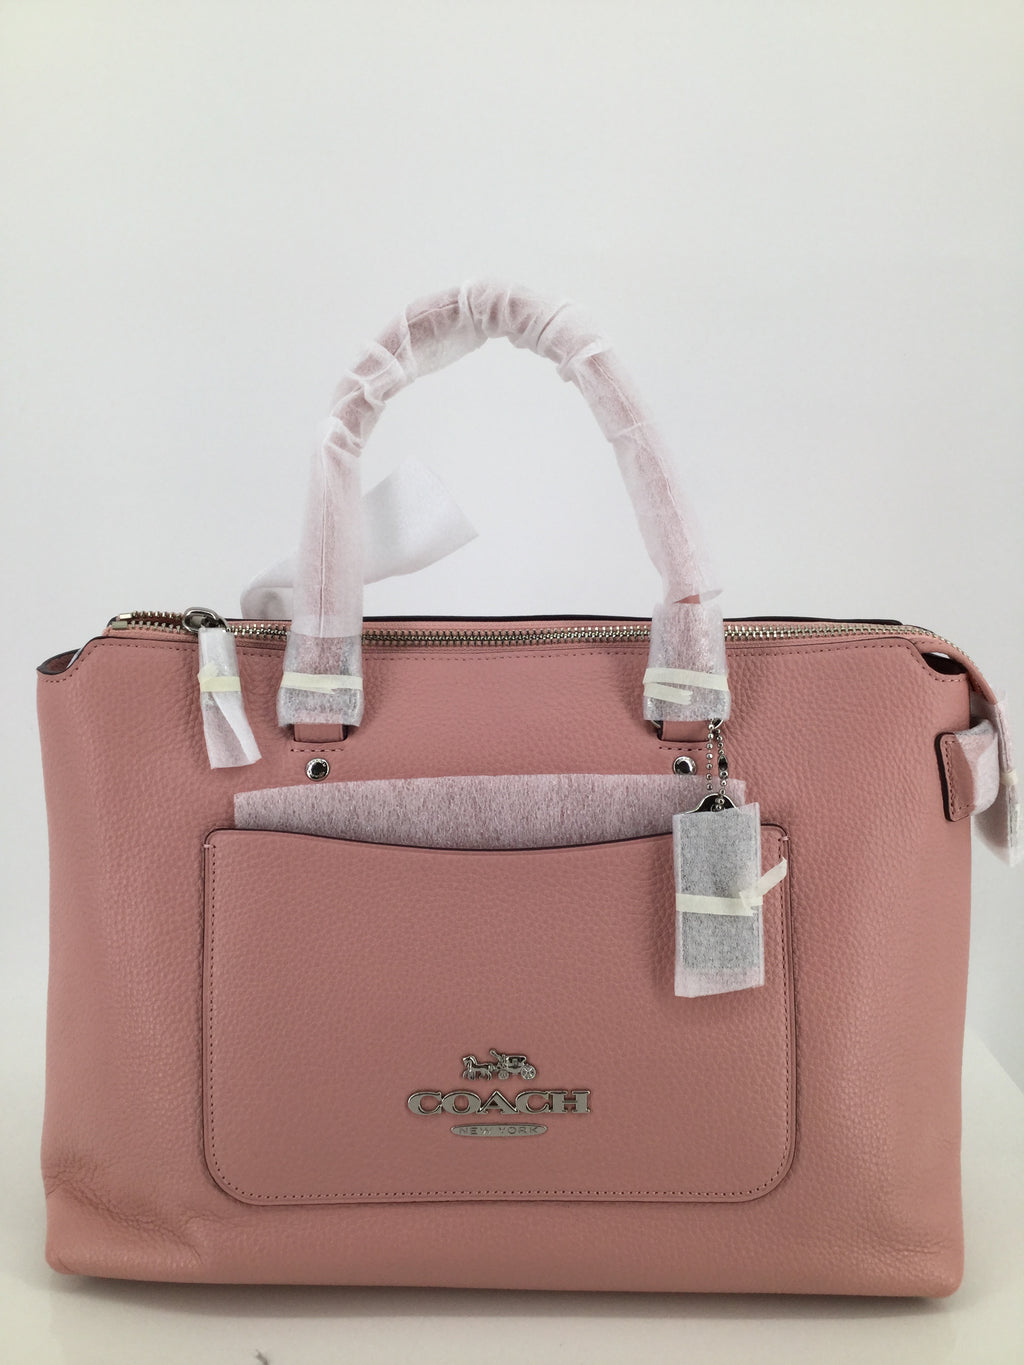 Coach Handbag Designer NWT Size:medium